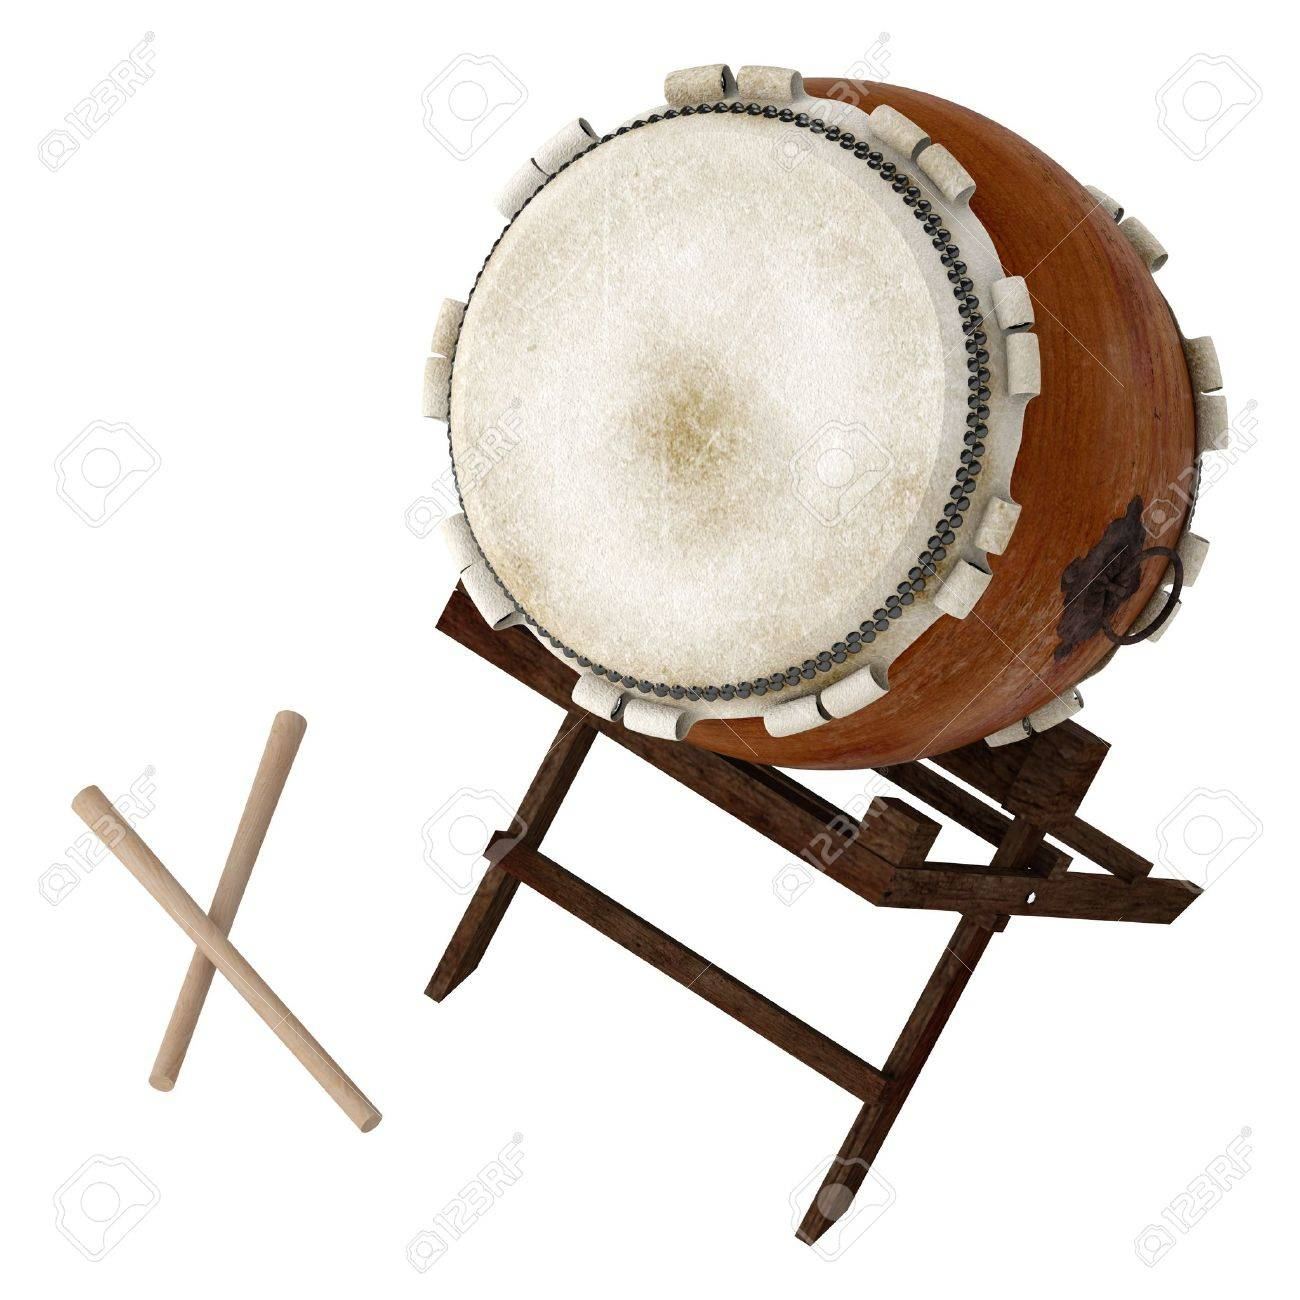 Taiko Isolated On White Background Stock Photo Picture And 1300x1300